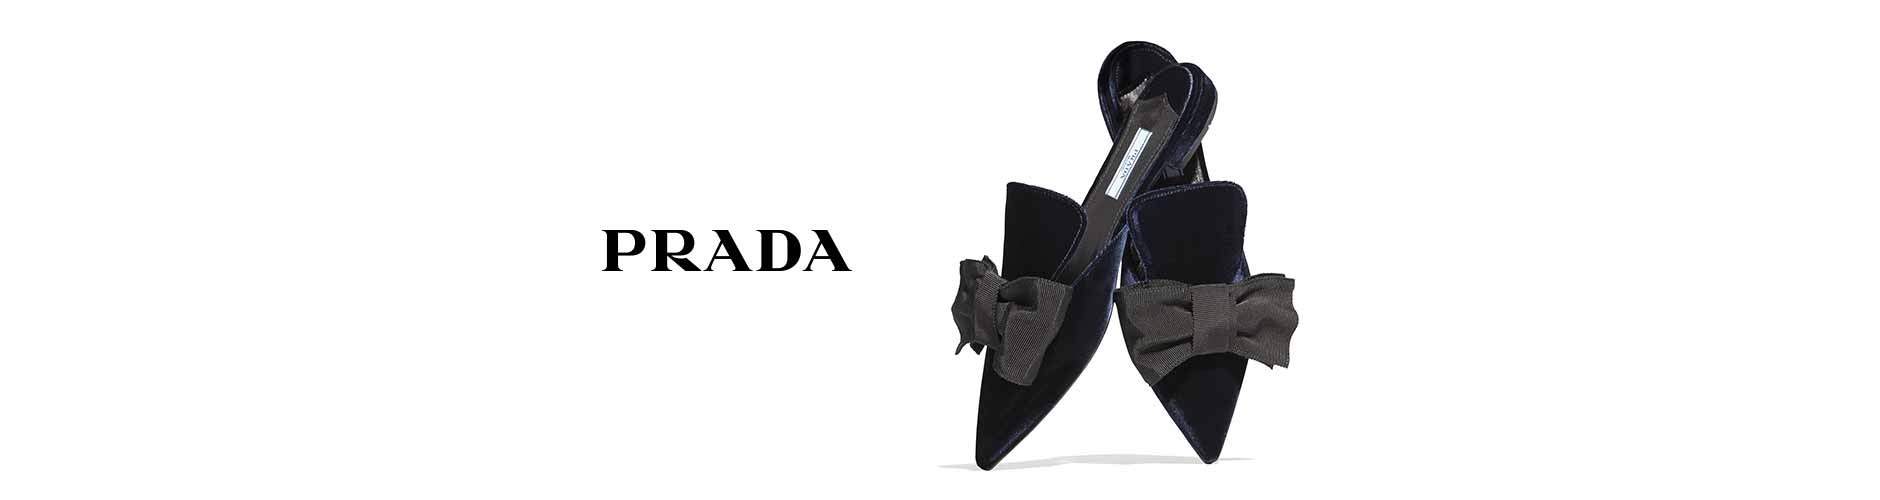 prada pink shoes that tie up